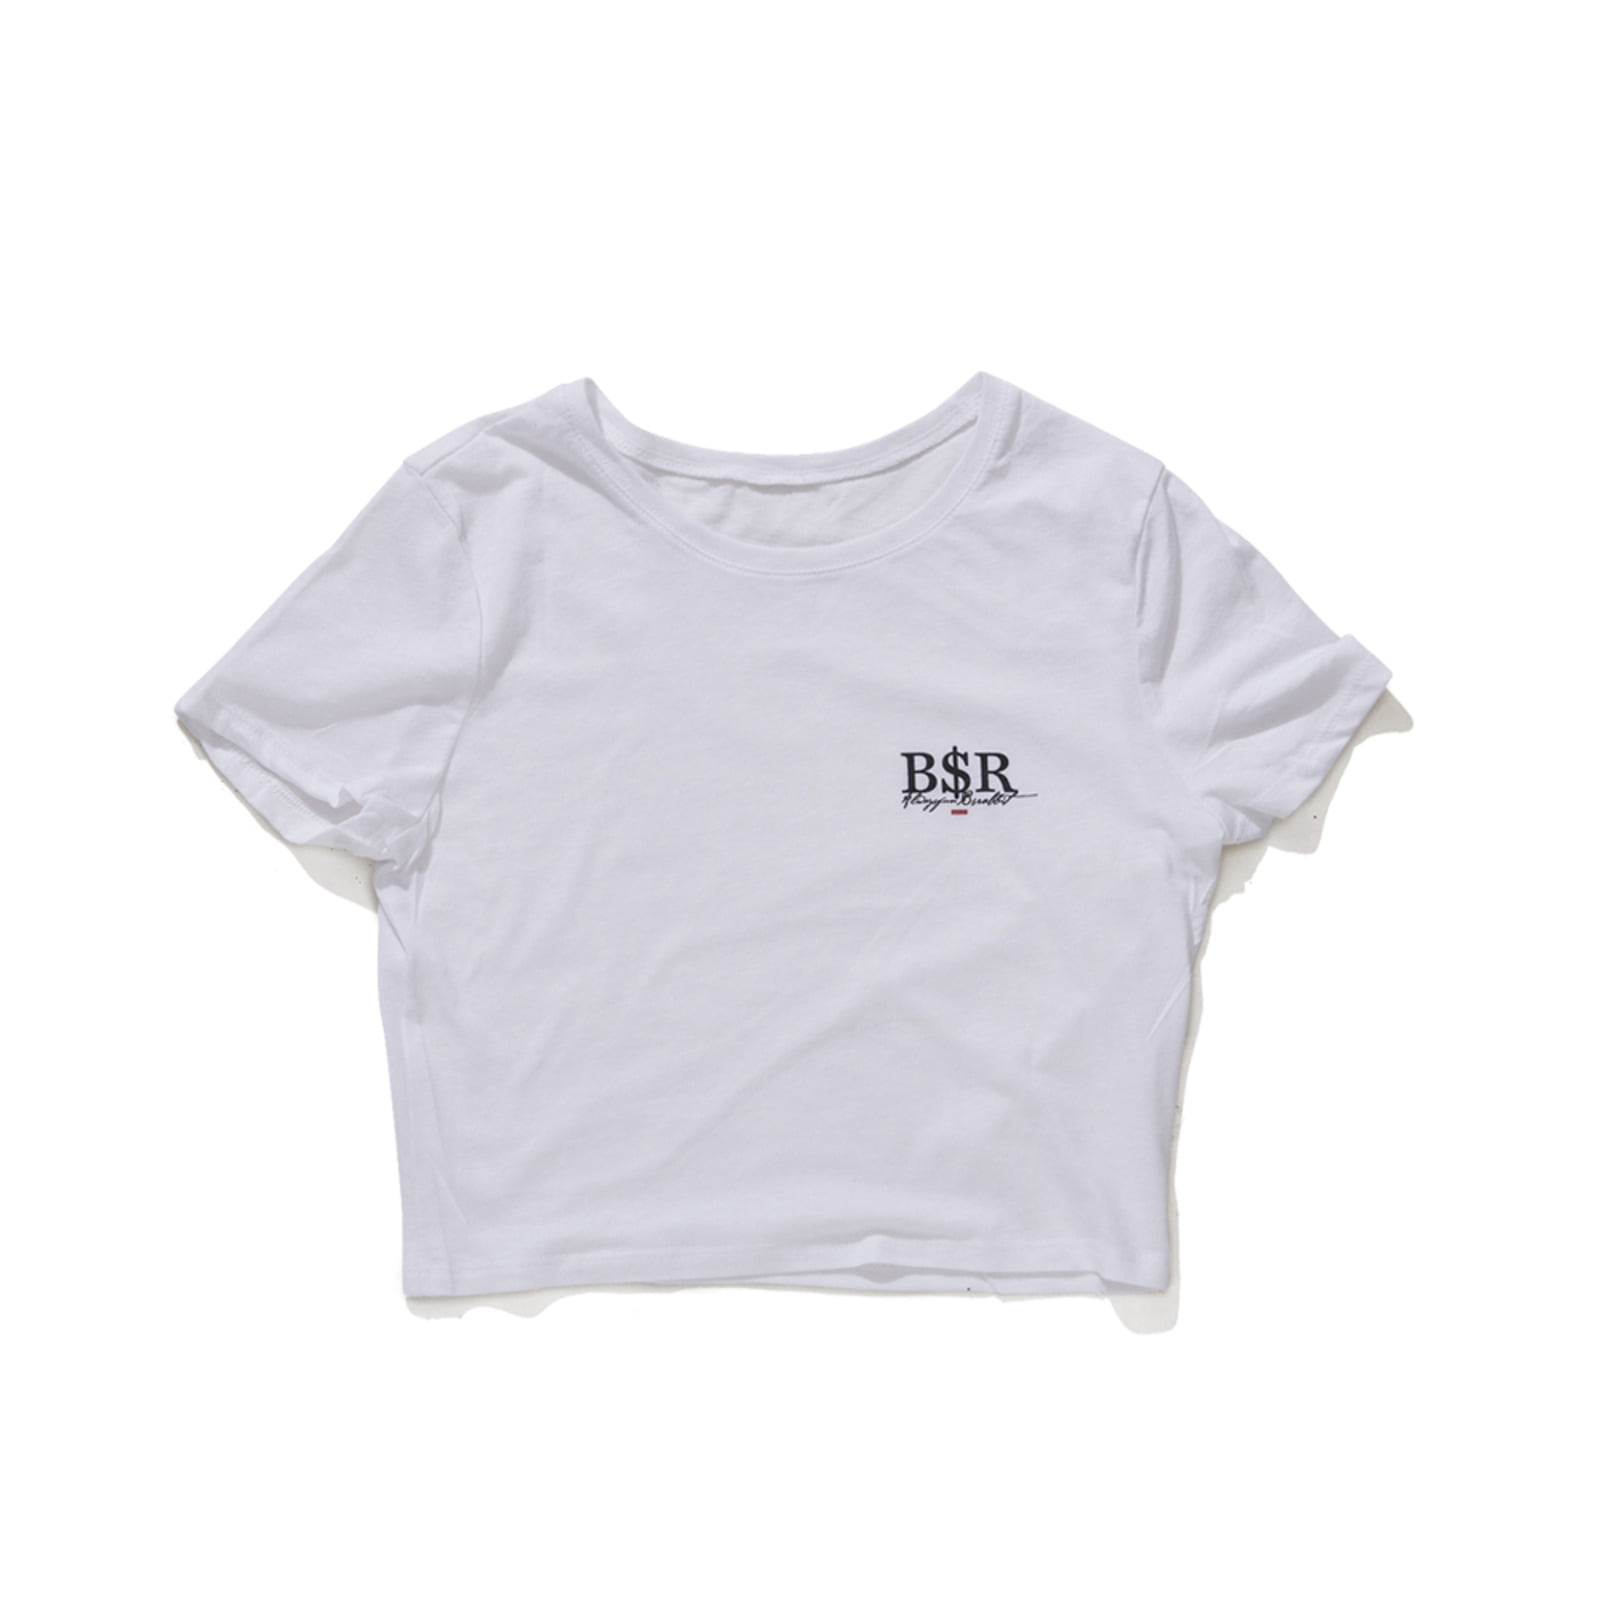 BSR CROP T-SHIRT WHITE